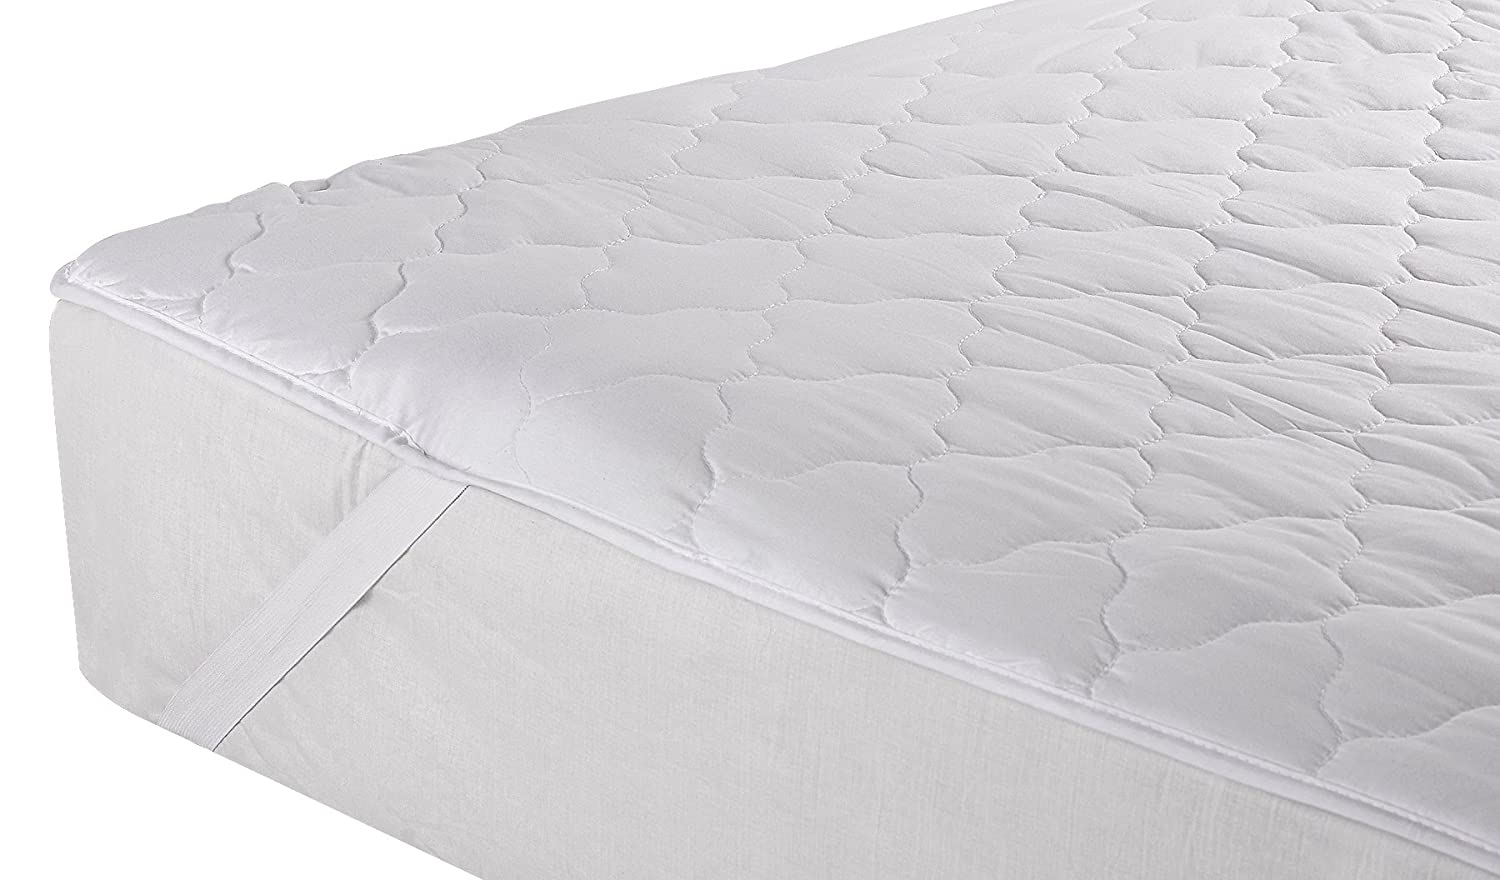 Gilbin Quilted Cot Size Mattress Pad, 30